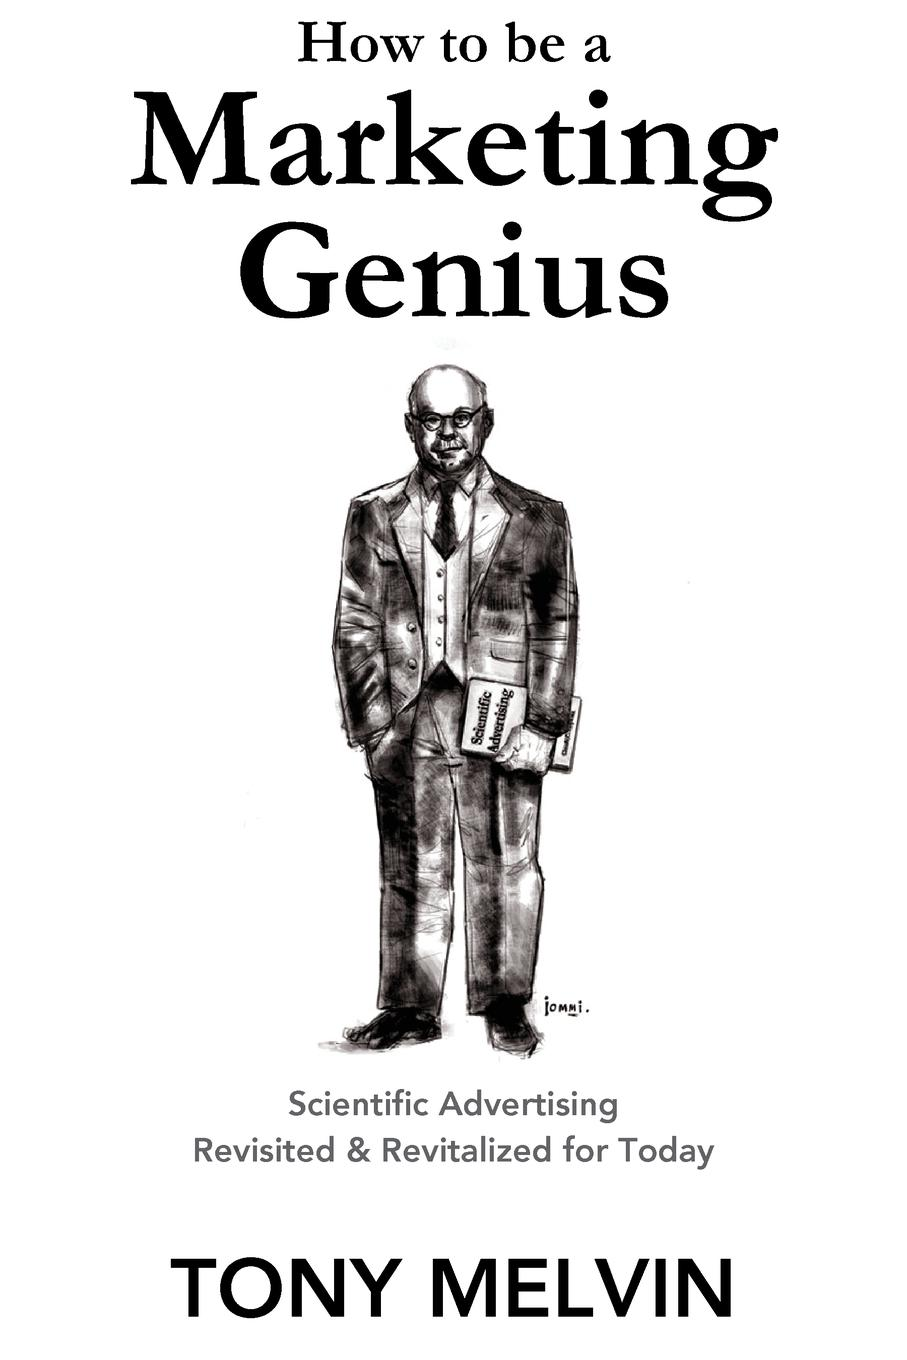 How to be a Marketing Genius. Scientific Advertising Revisited and Revitalized for Today Claude Hopkins was a marketing genius earning $185,000 in 1907 as...